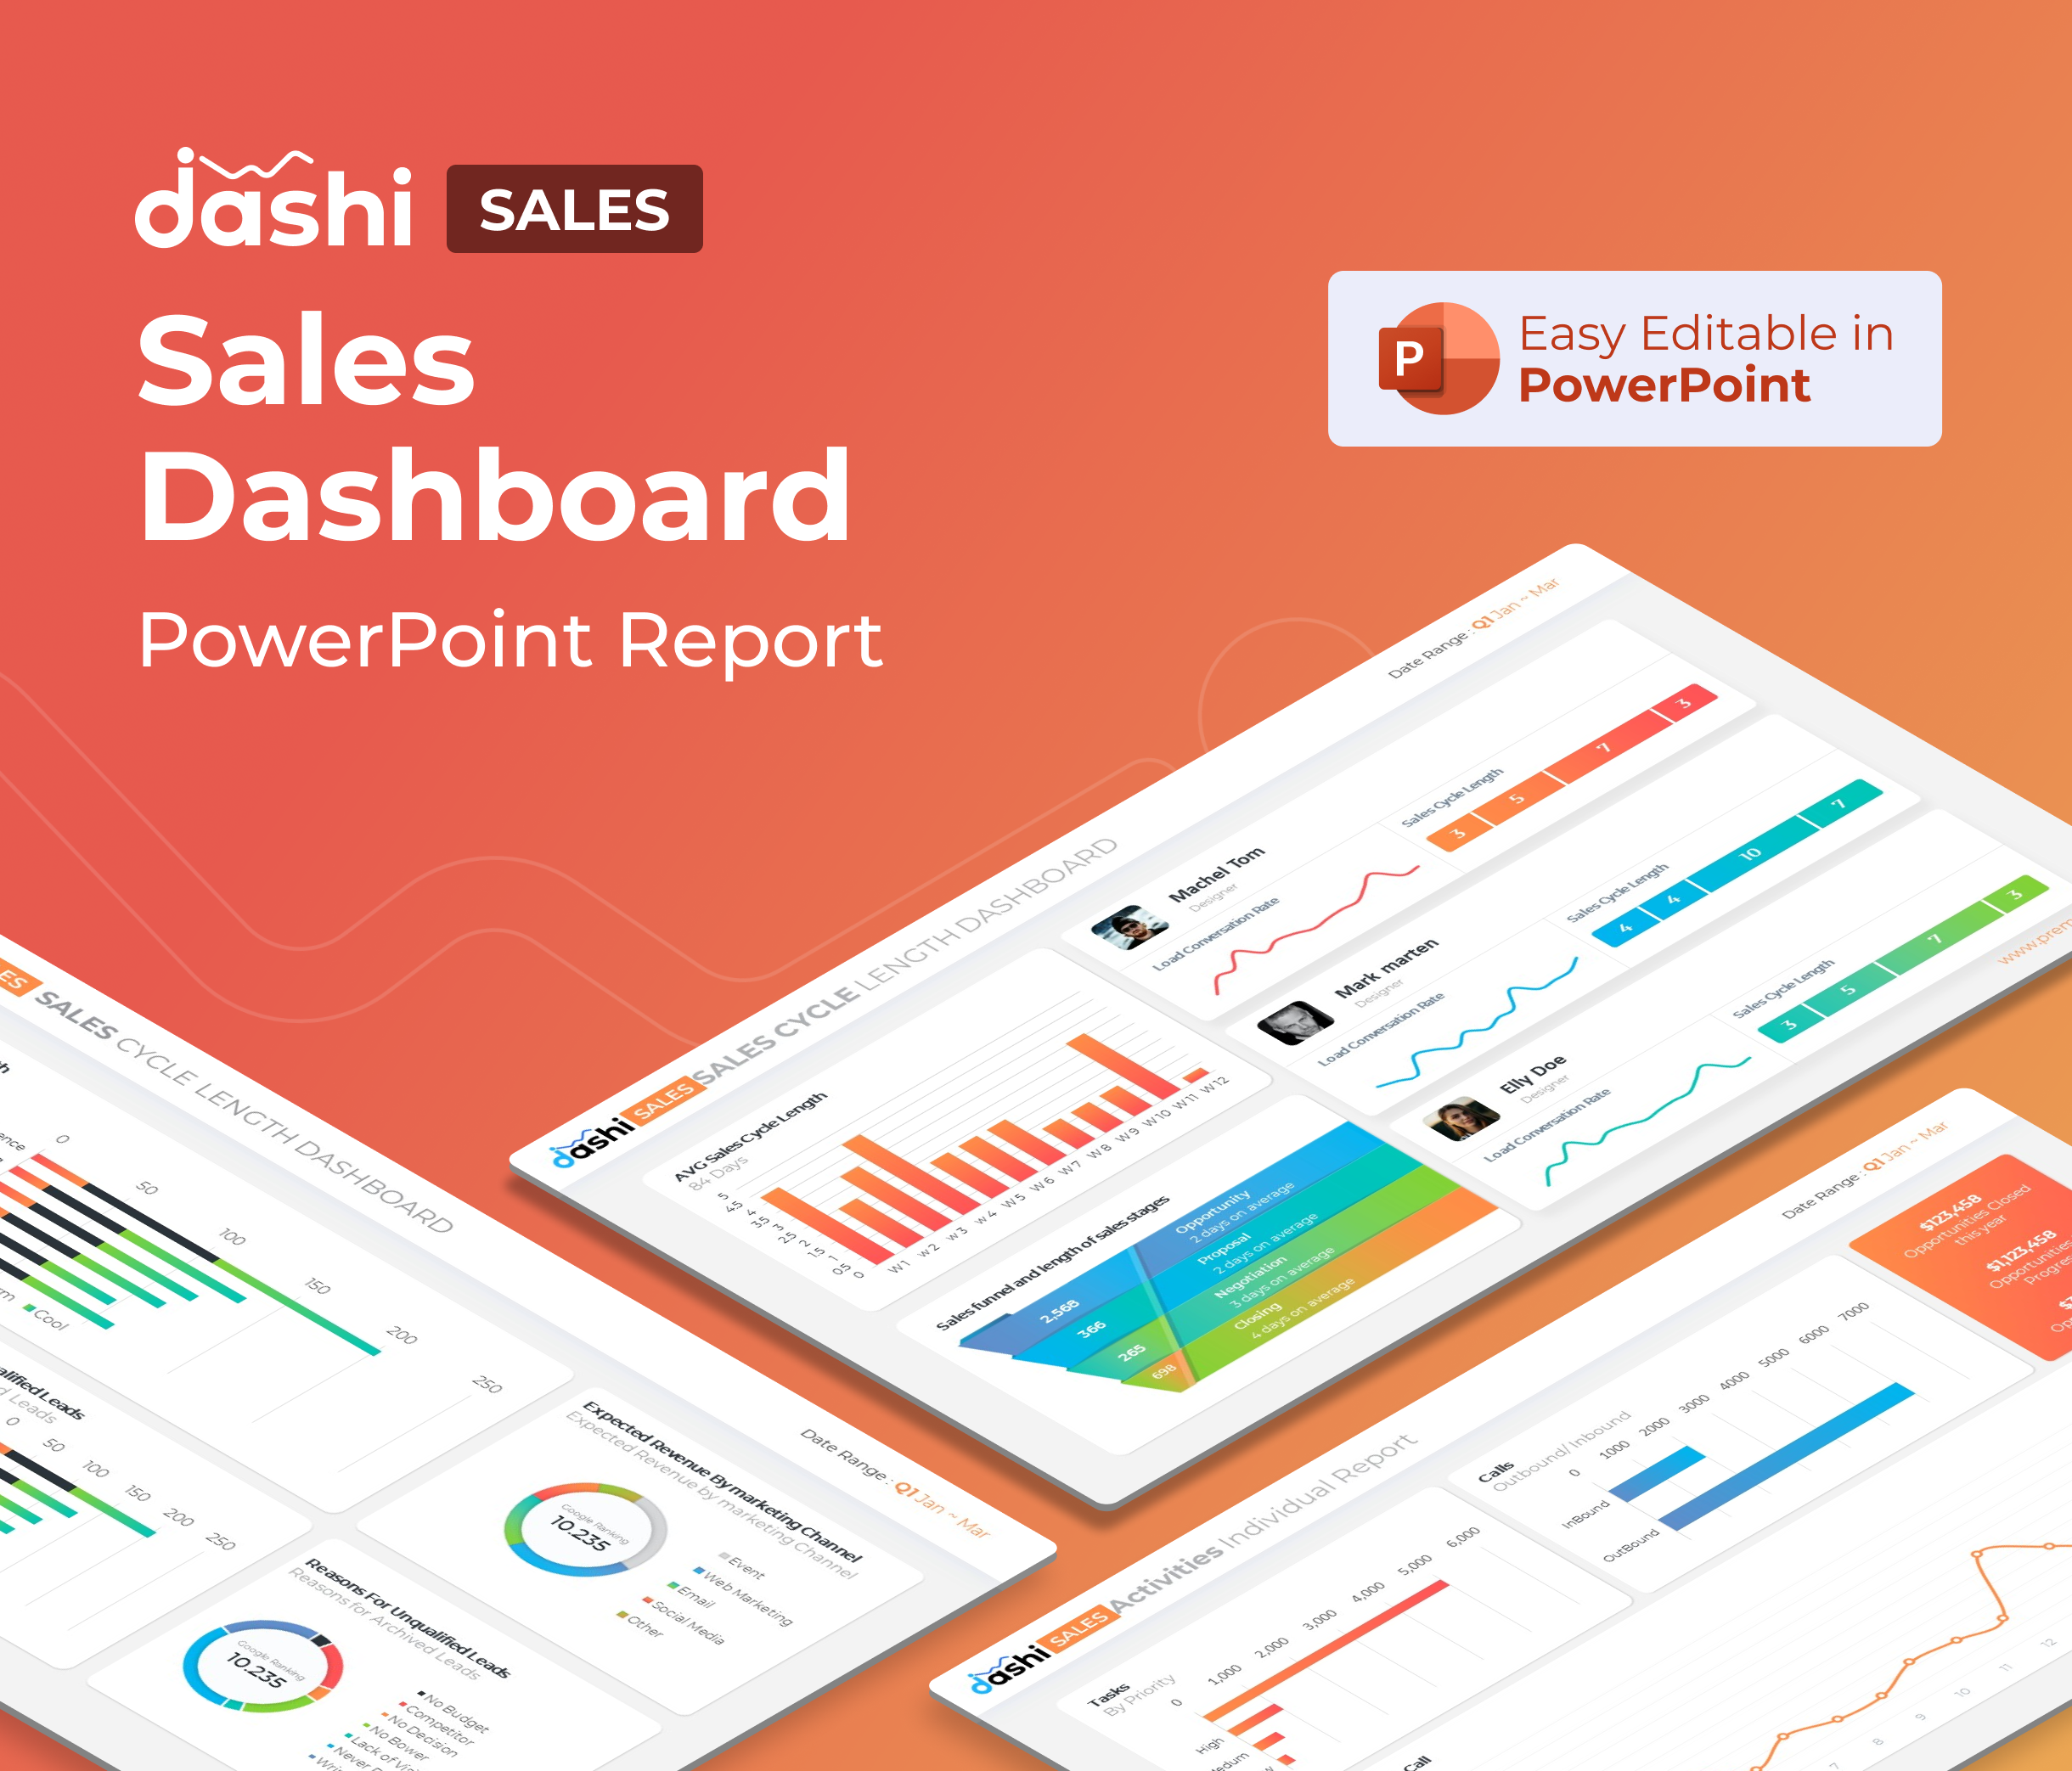 Dashi Sales – Sales Dashboard Report PPT Presentation